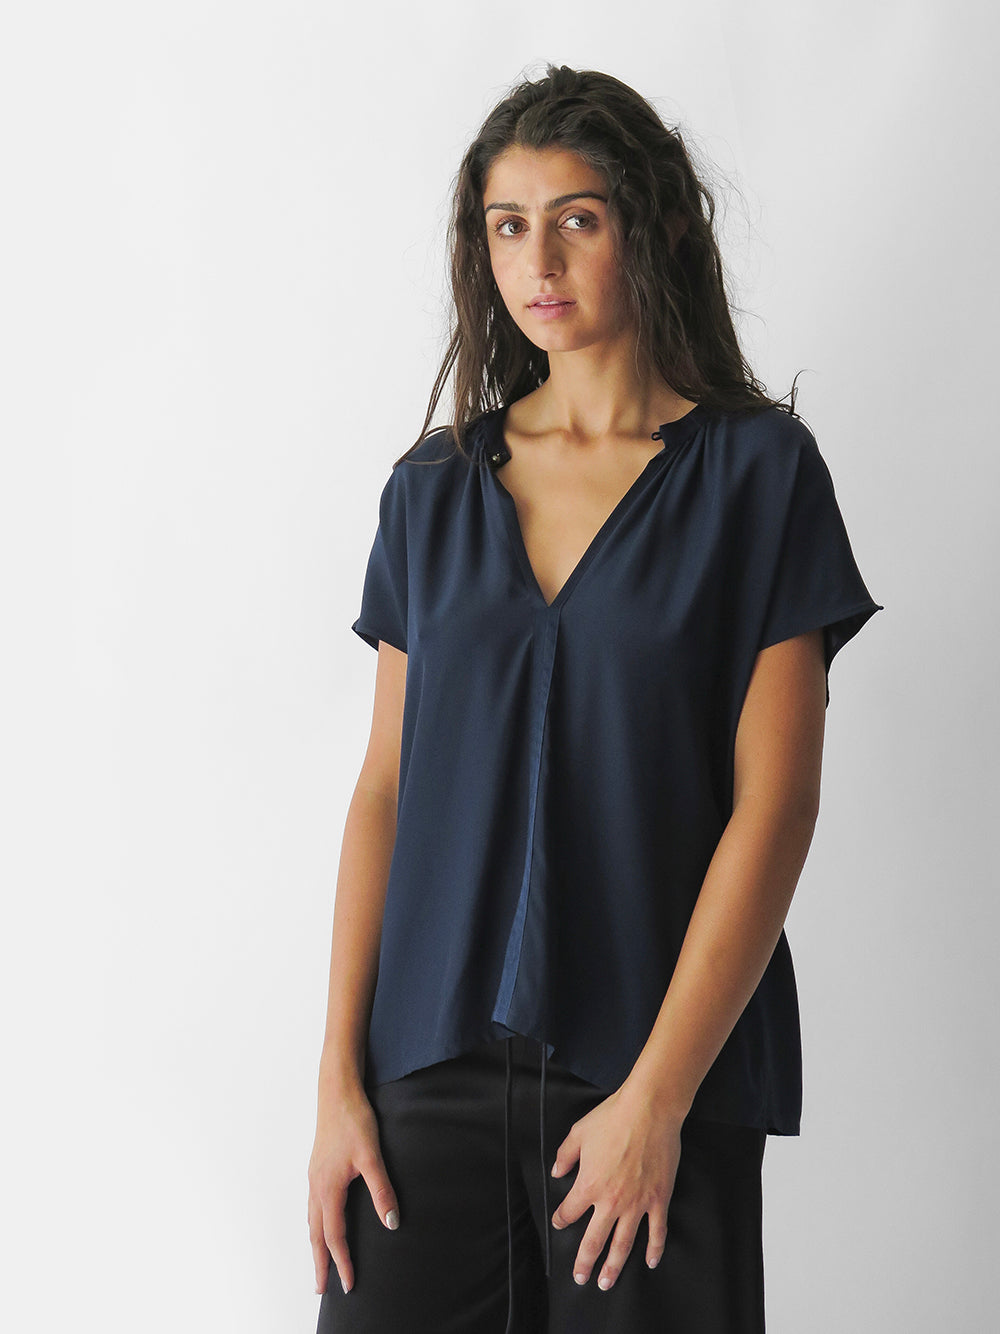 our timeless & essential cap sleeve blouse of matte faced silk charmeuse. v-neck with gathers at neckline & button loop closure. trimmed with satin detail. transitions between seasons & day to evening. made in usa. available online, berkeley 4th street, marin country mart, & row dtla.